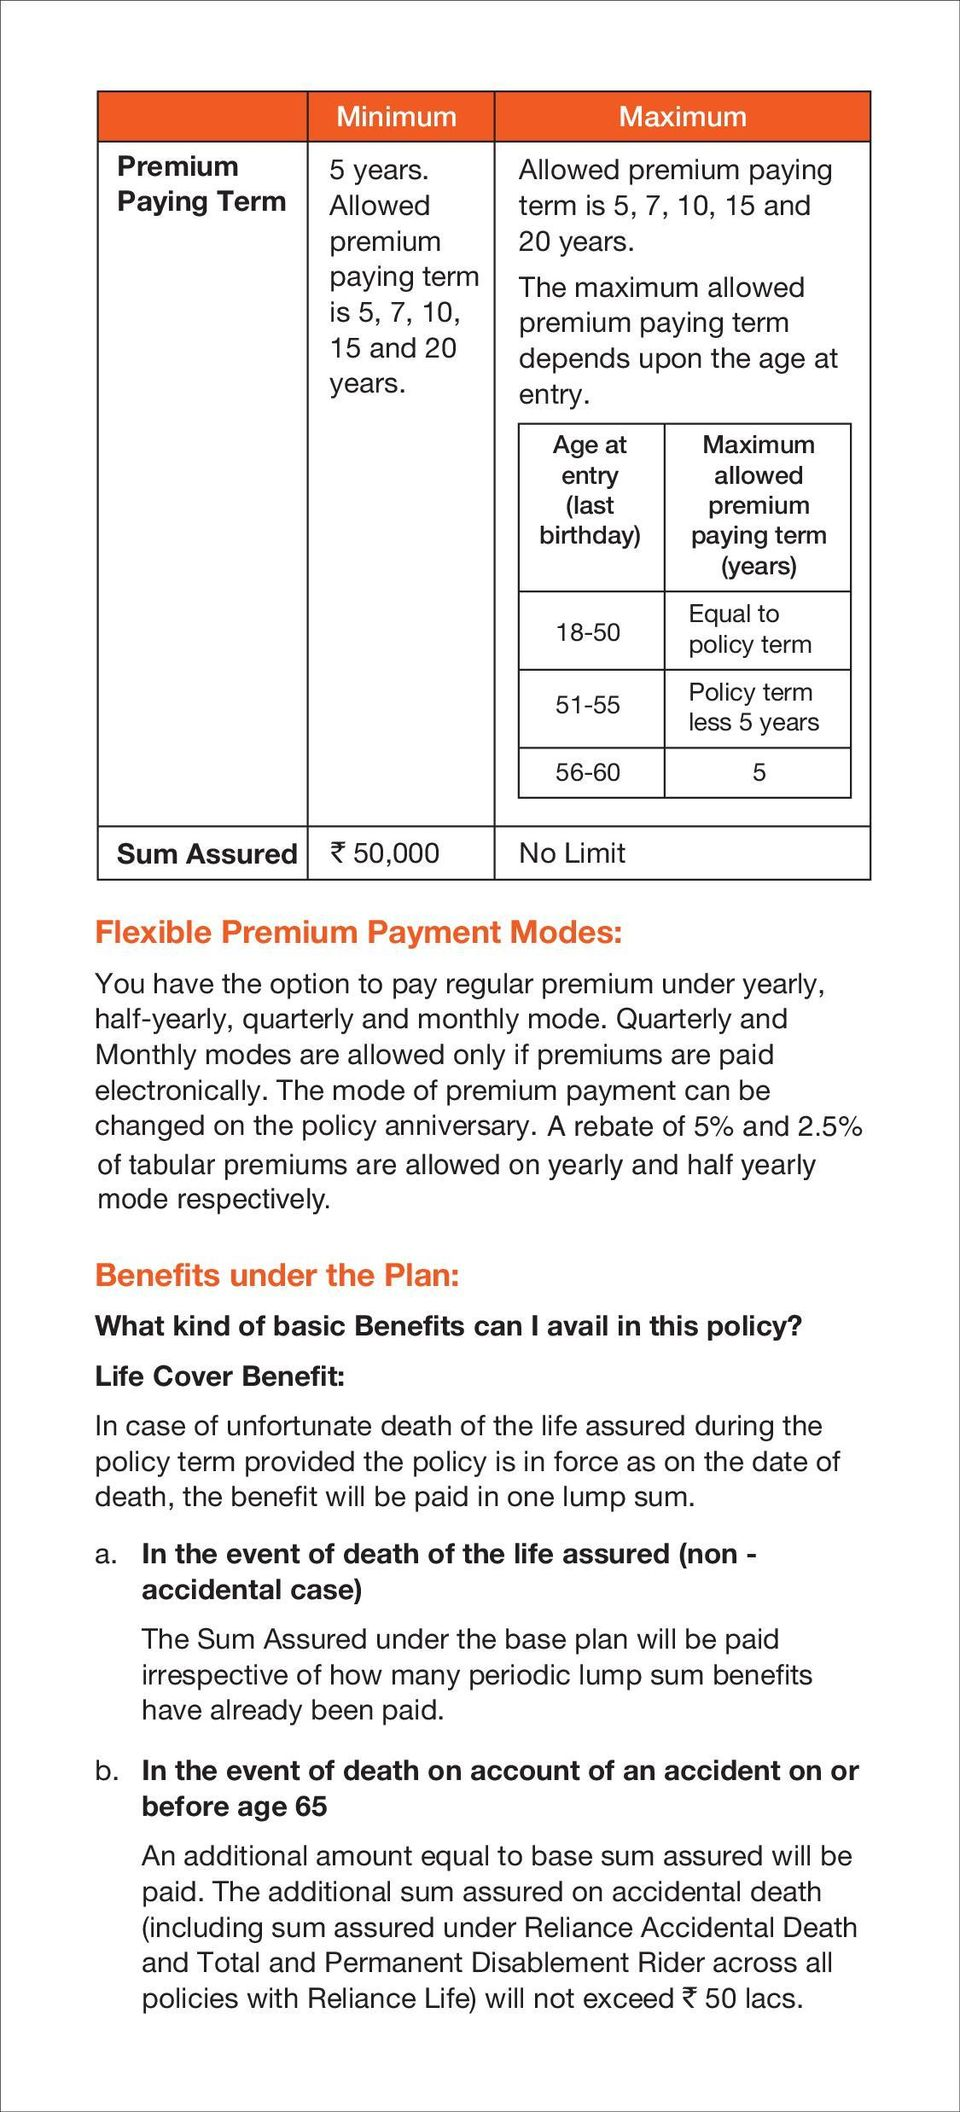 Modes: You have the option to pay regular premium under yearly, half-yearly, quarterly and monthly mode. Quarterly and Monthly modes are allowed only if premiums are paid electronically.